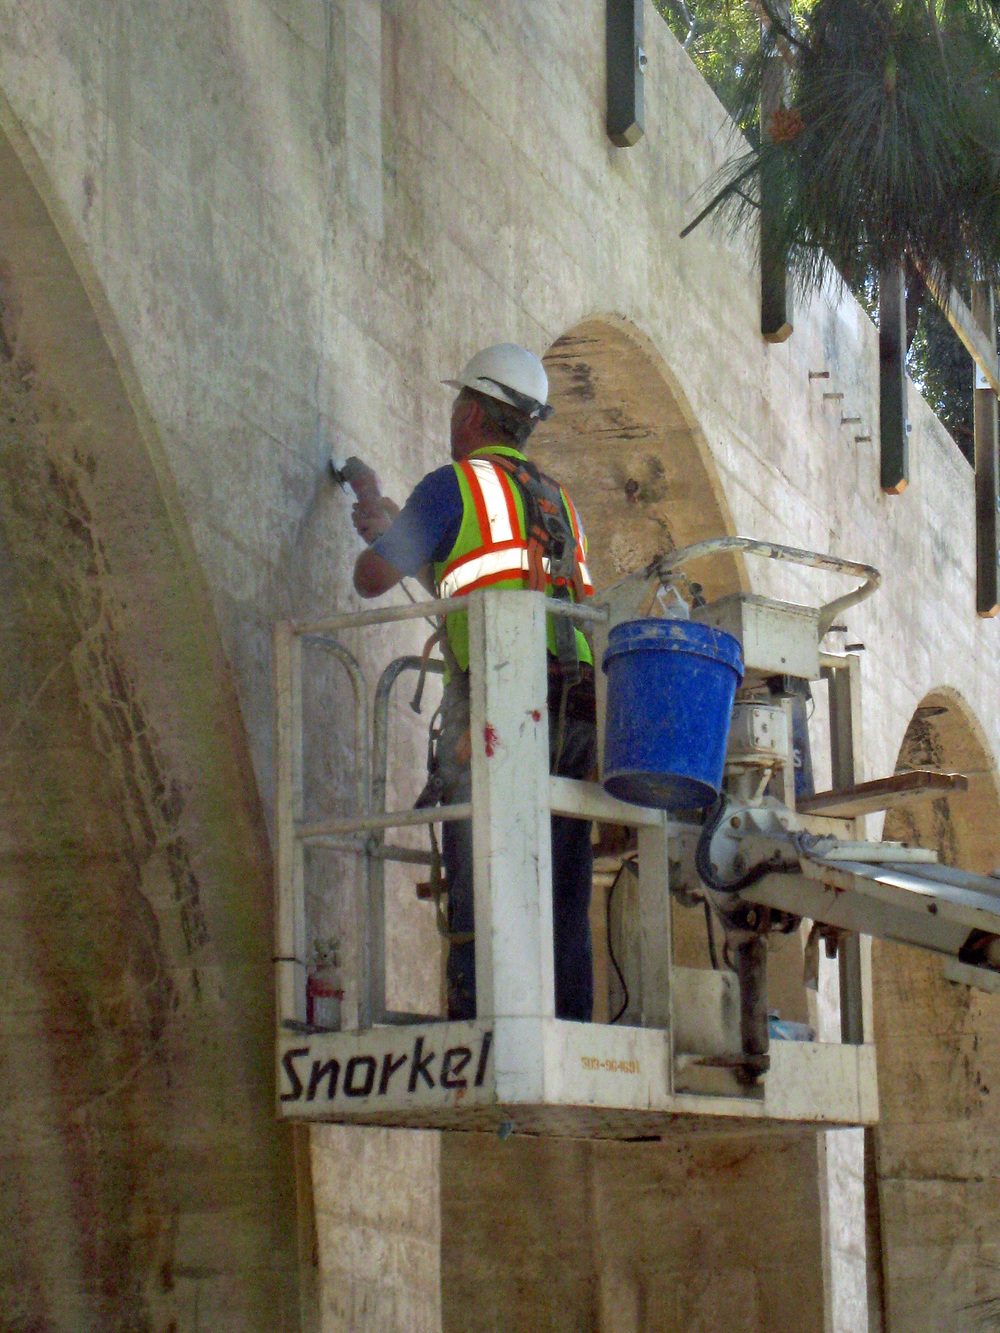 Workers carefully patched damaged concrete to match the original.